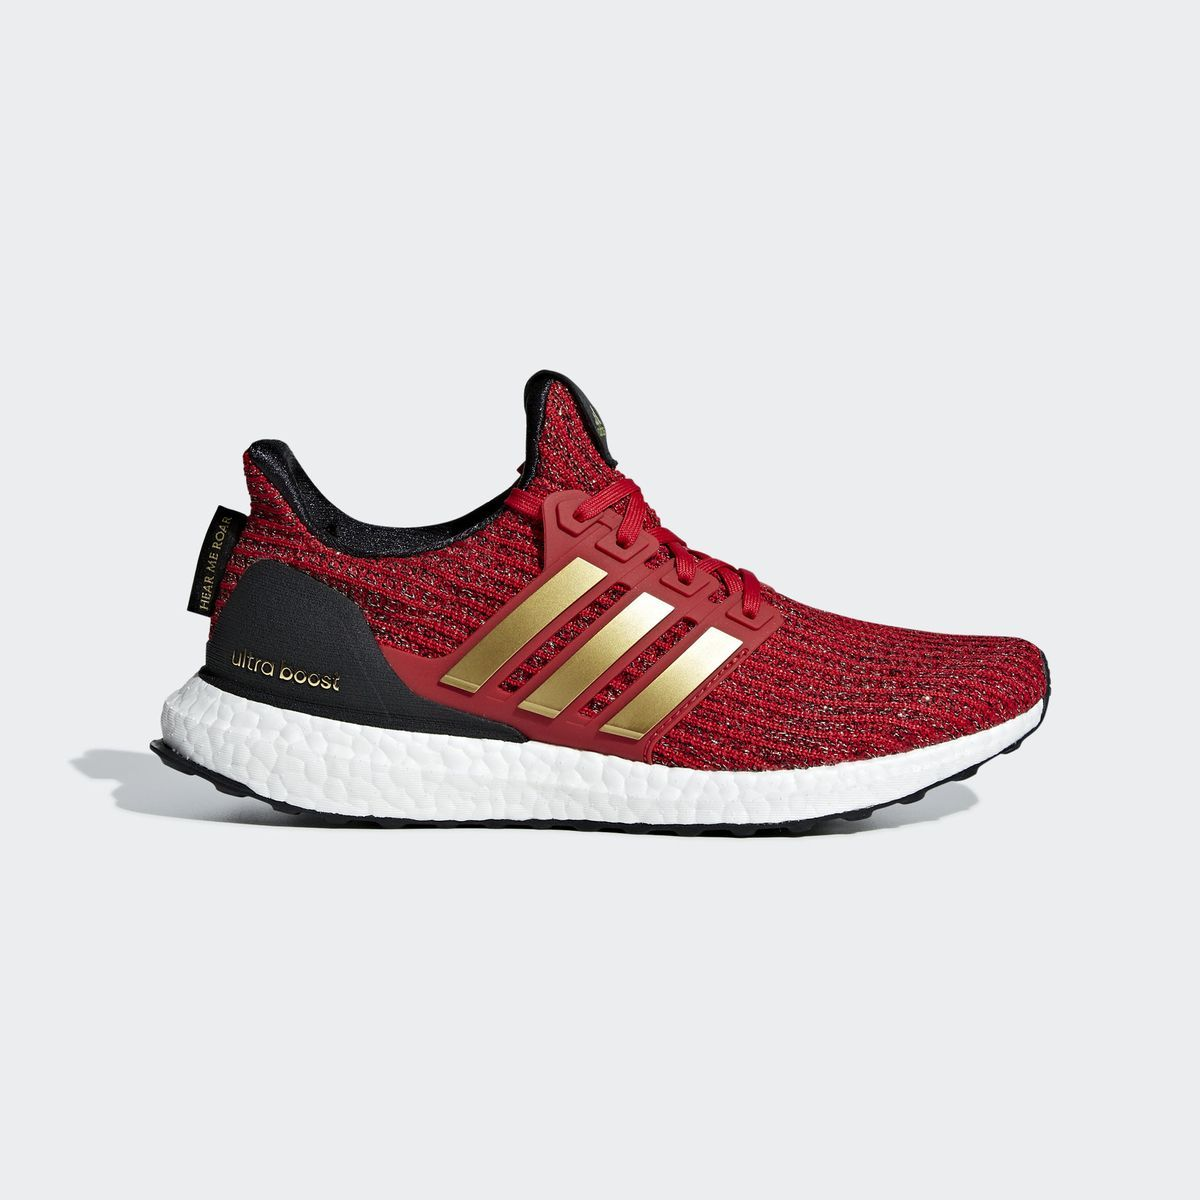 Baskets Chaussure Ultraboost Adidas X Game Of Thrones House